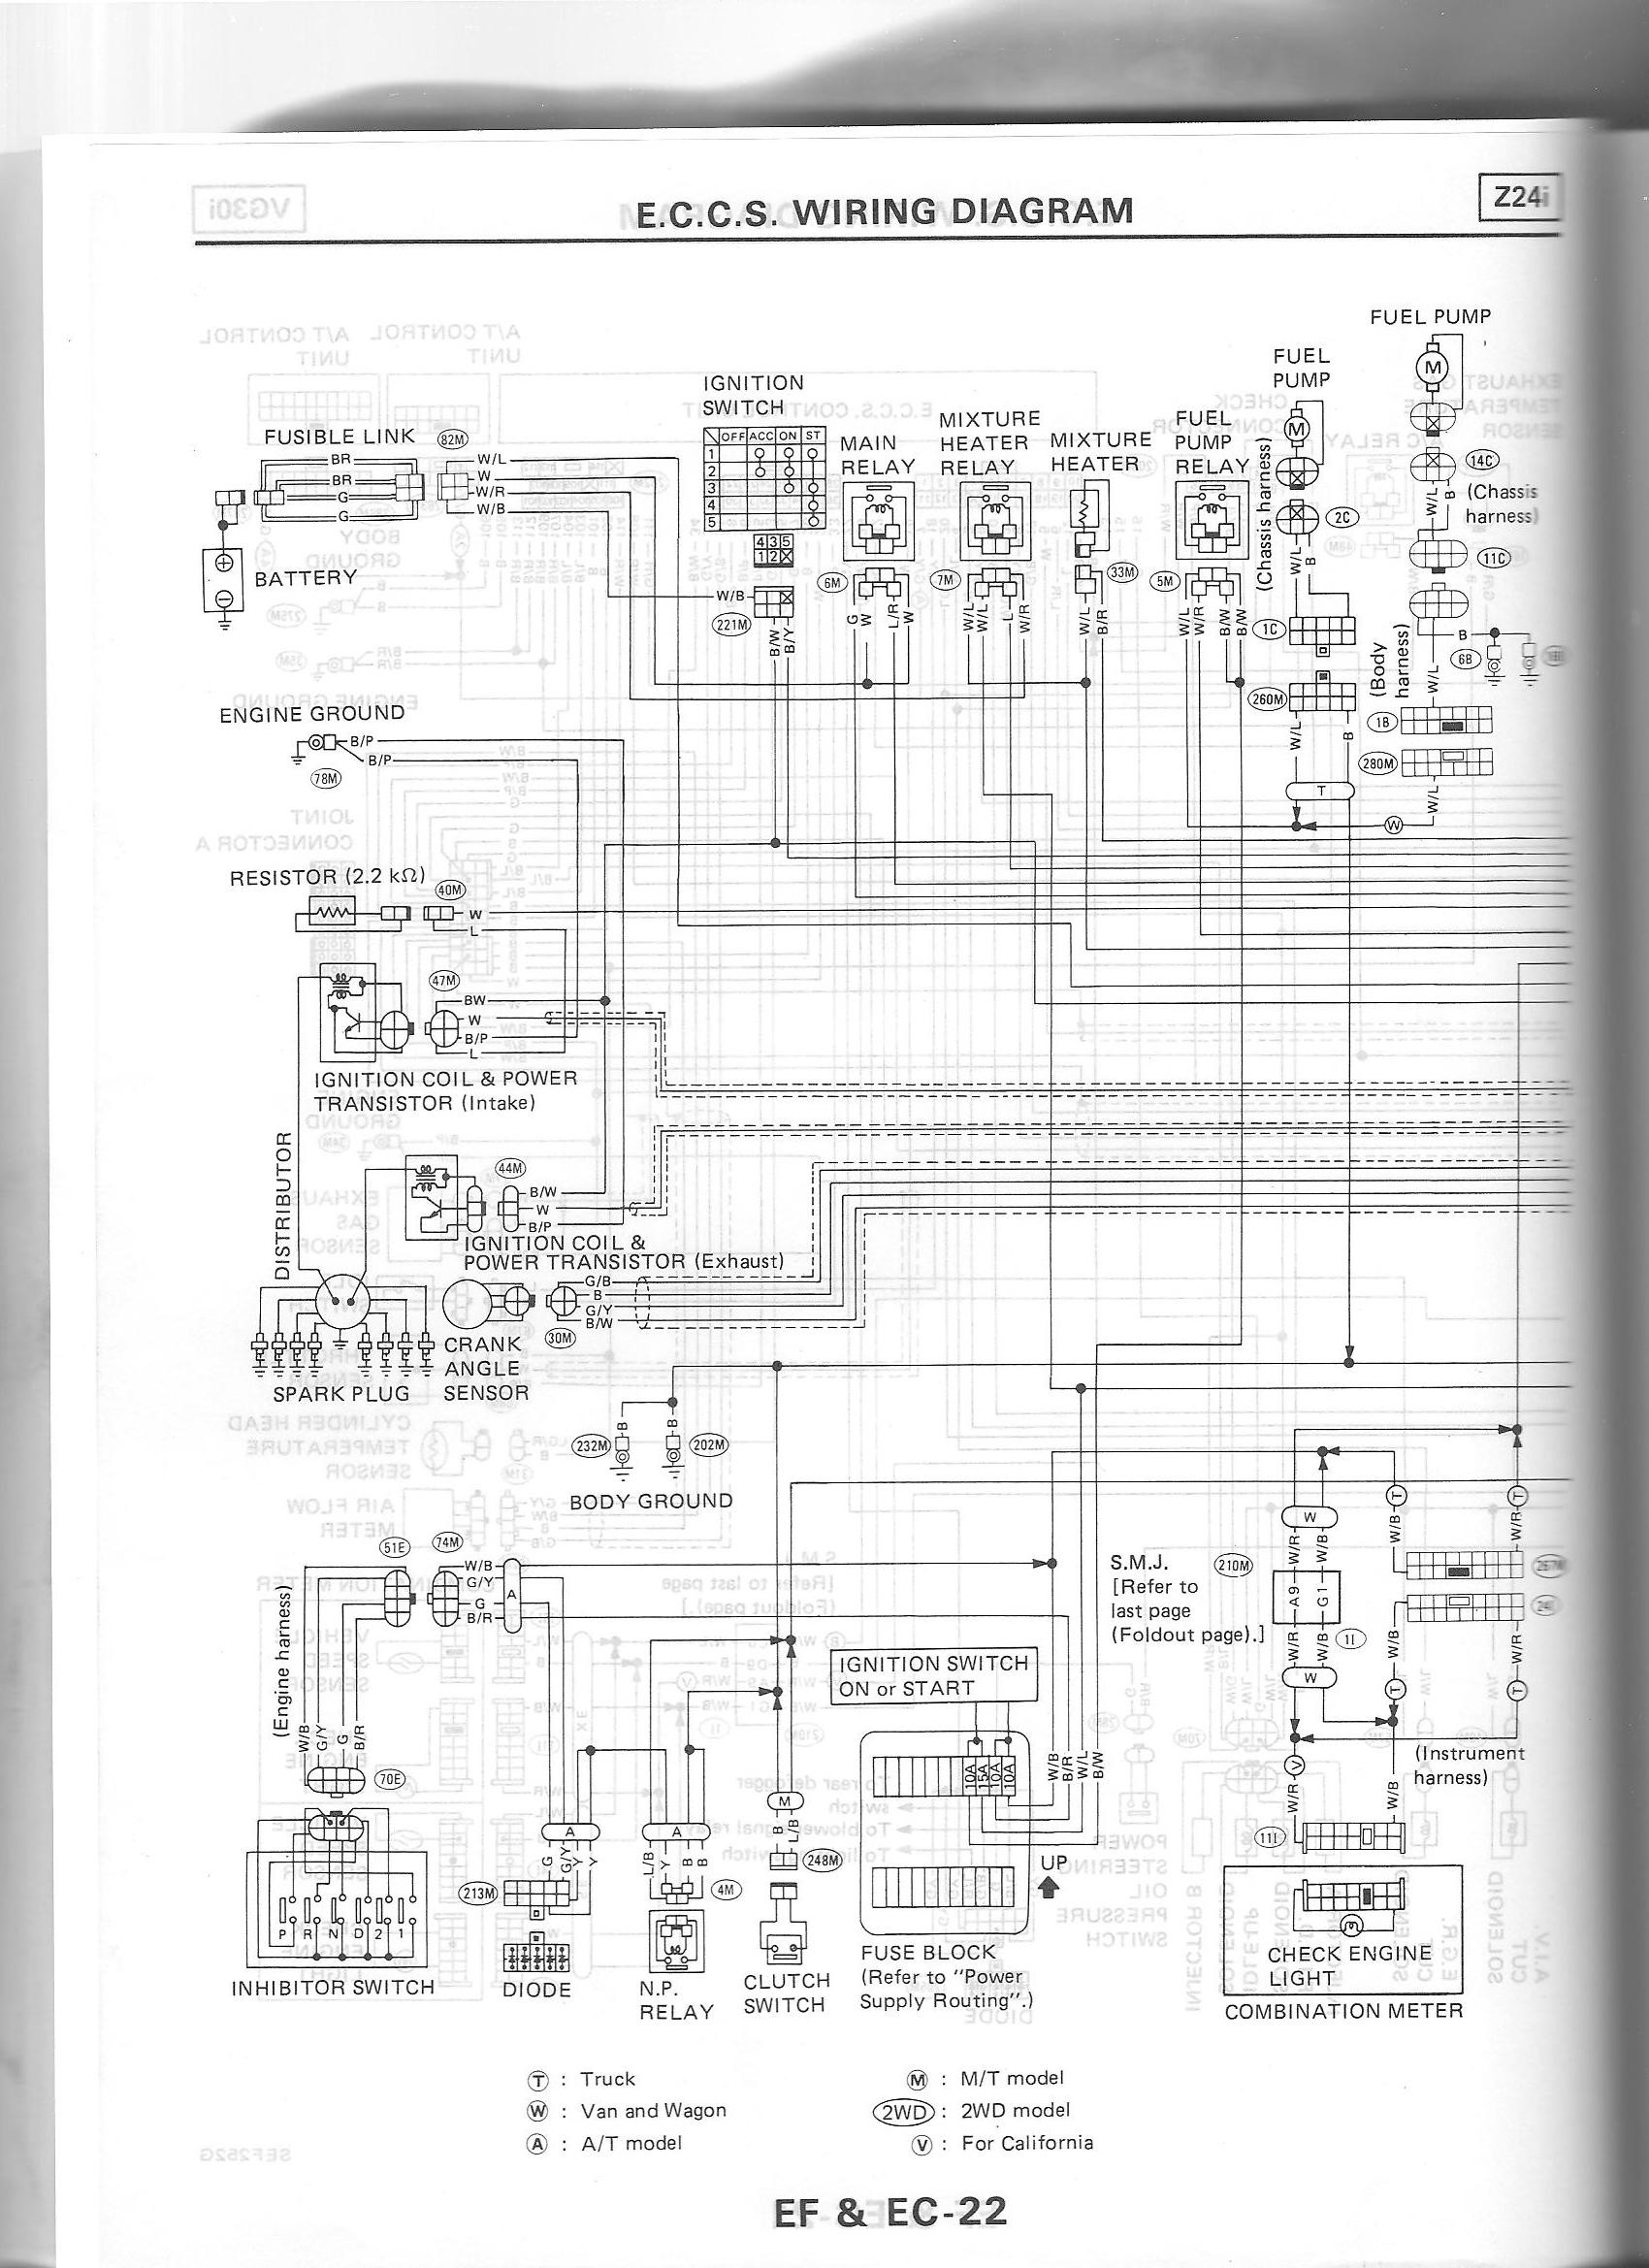 1989 300zx Wiring Diagram | Wiring Diagram